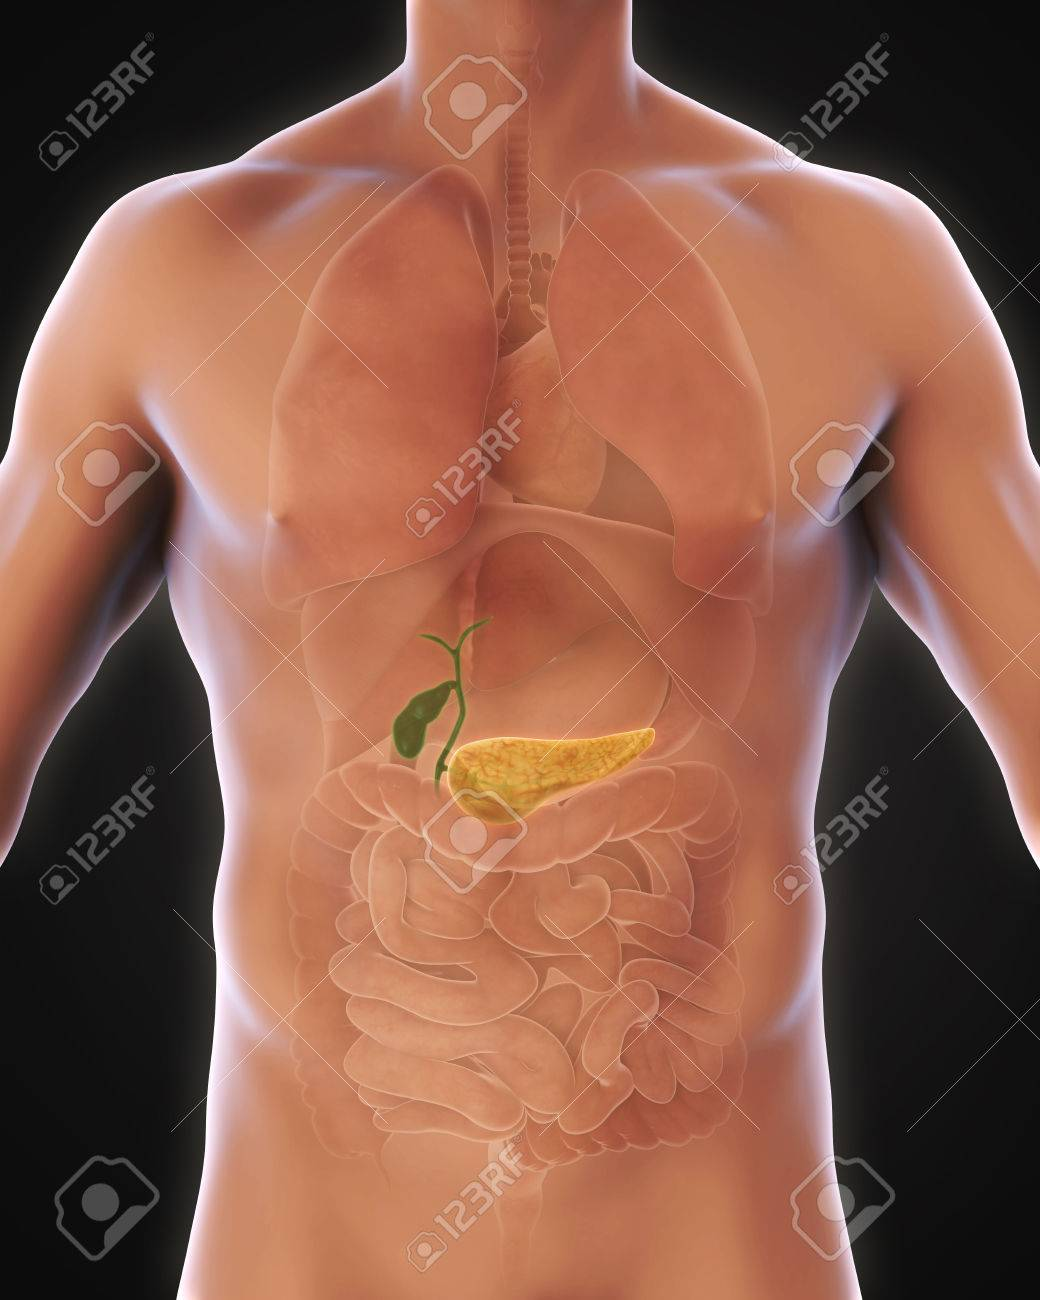 Human Gallbladder And Pancreas Anatomy Stock Photo, Picture And ...